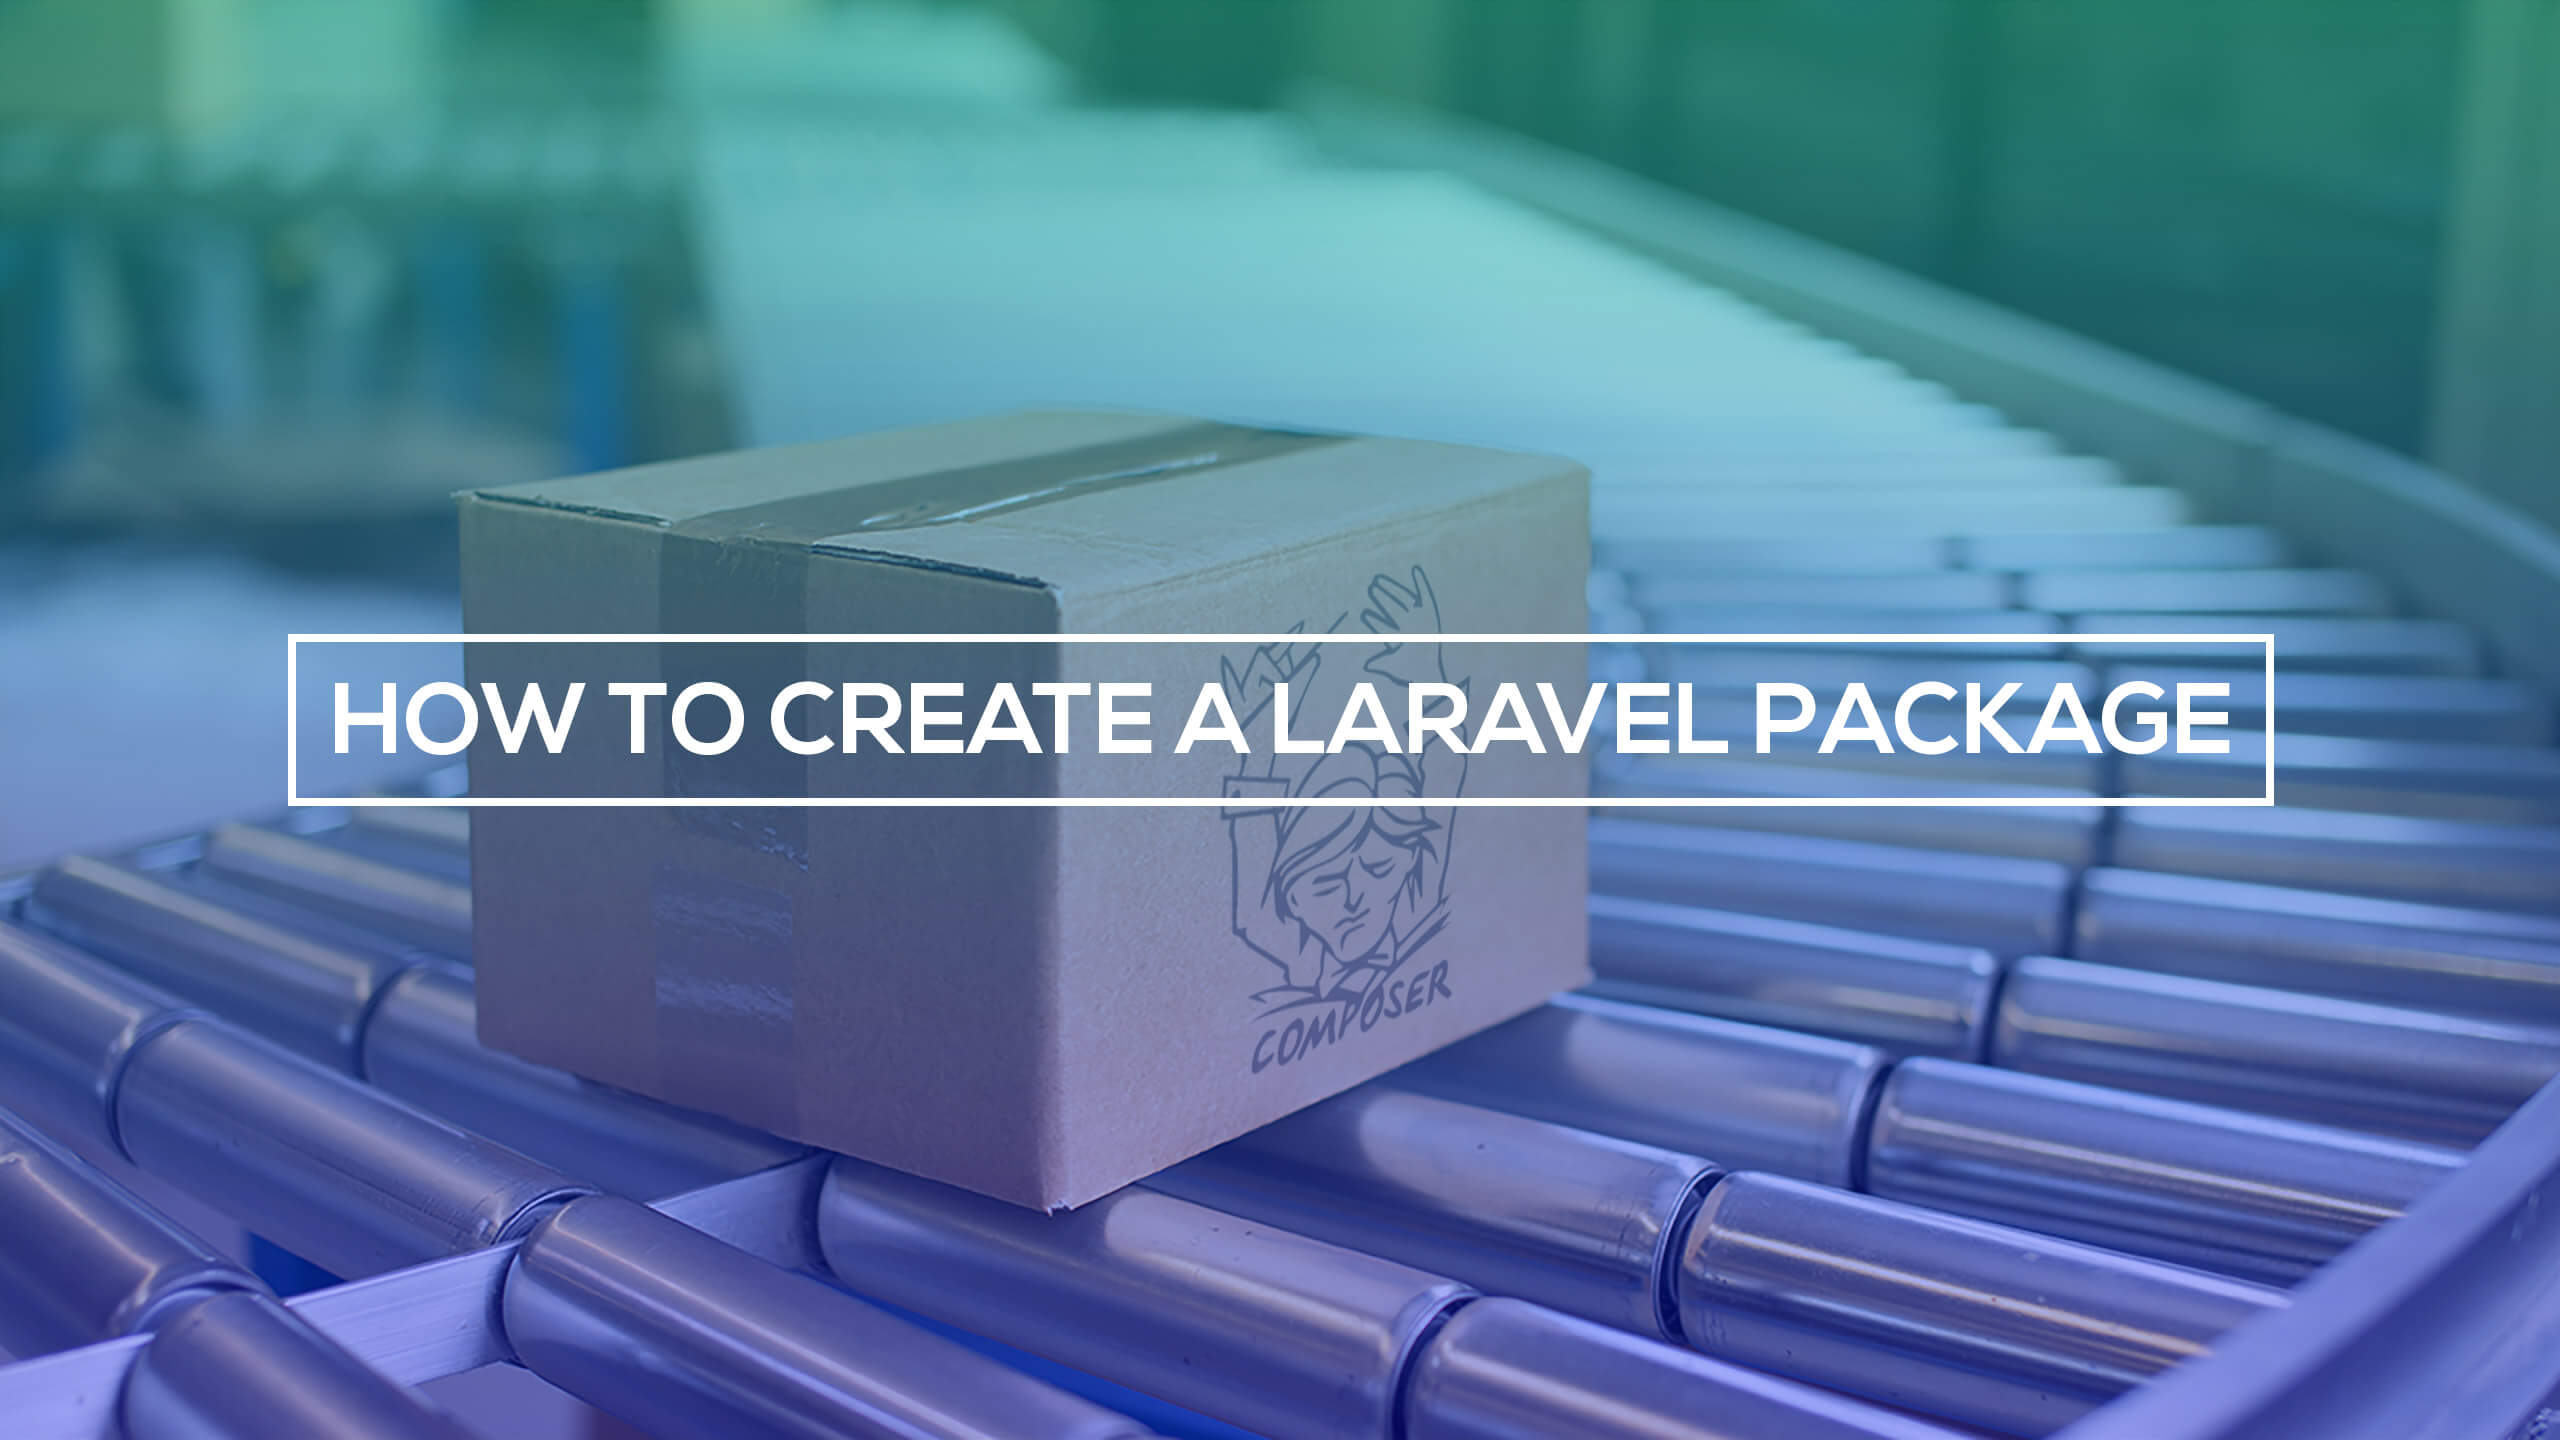 How to create a Laravel Package